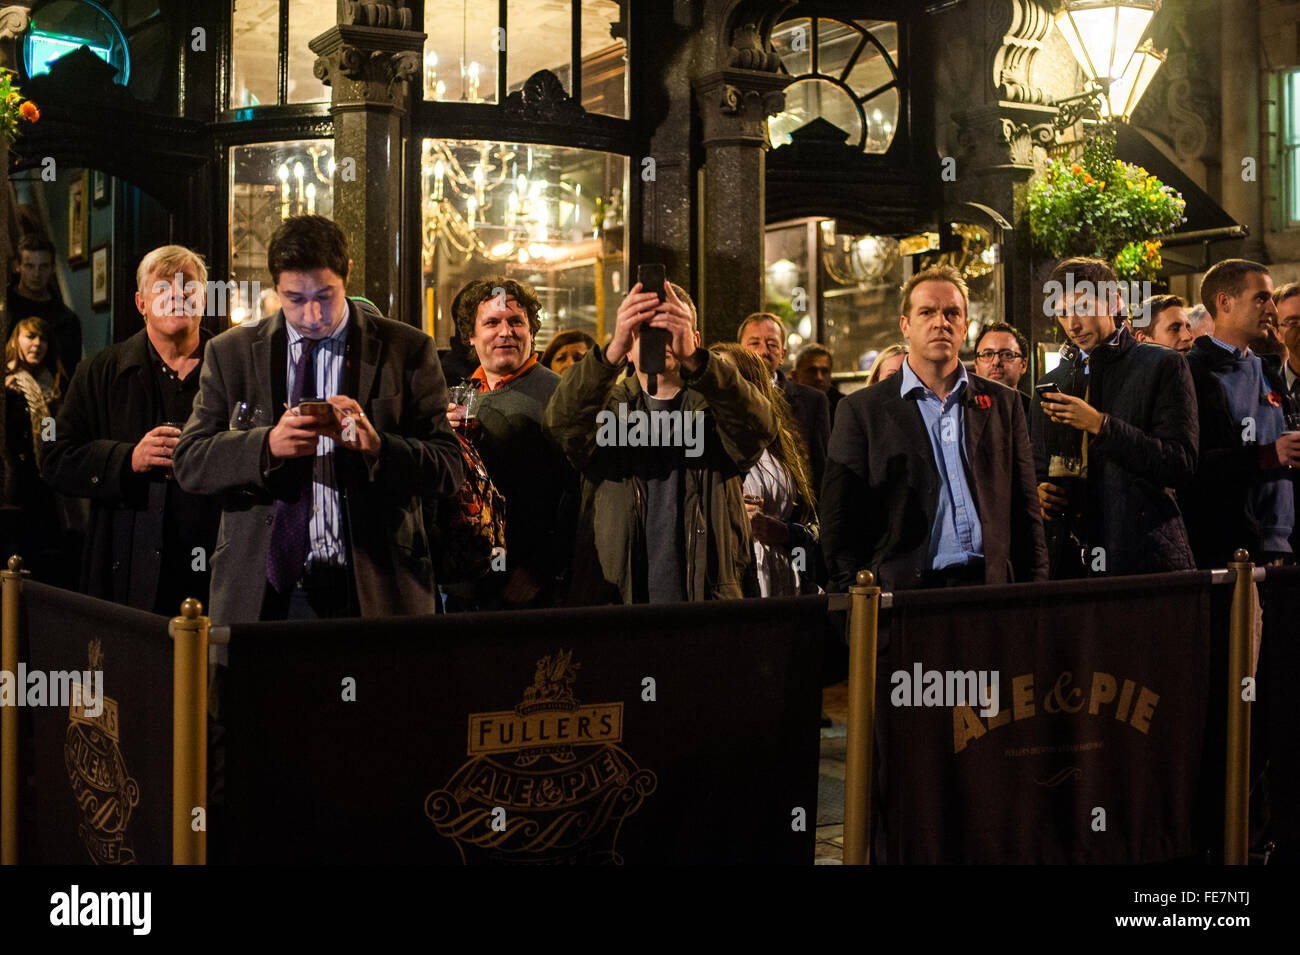 Pub onlookers, Million Mask March, London 2014 - Stock Image